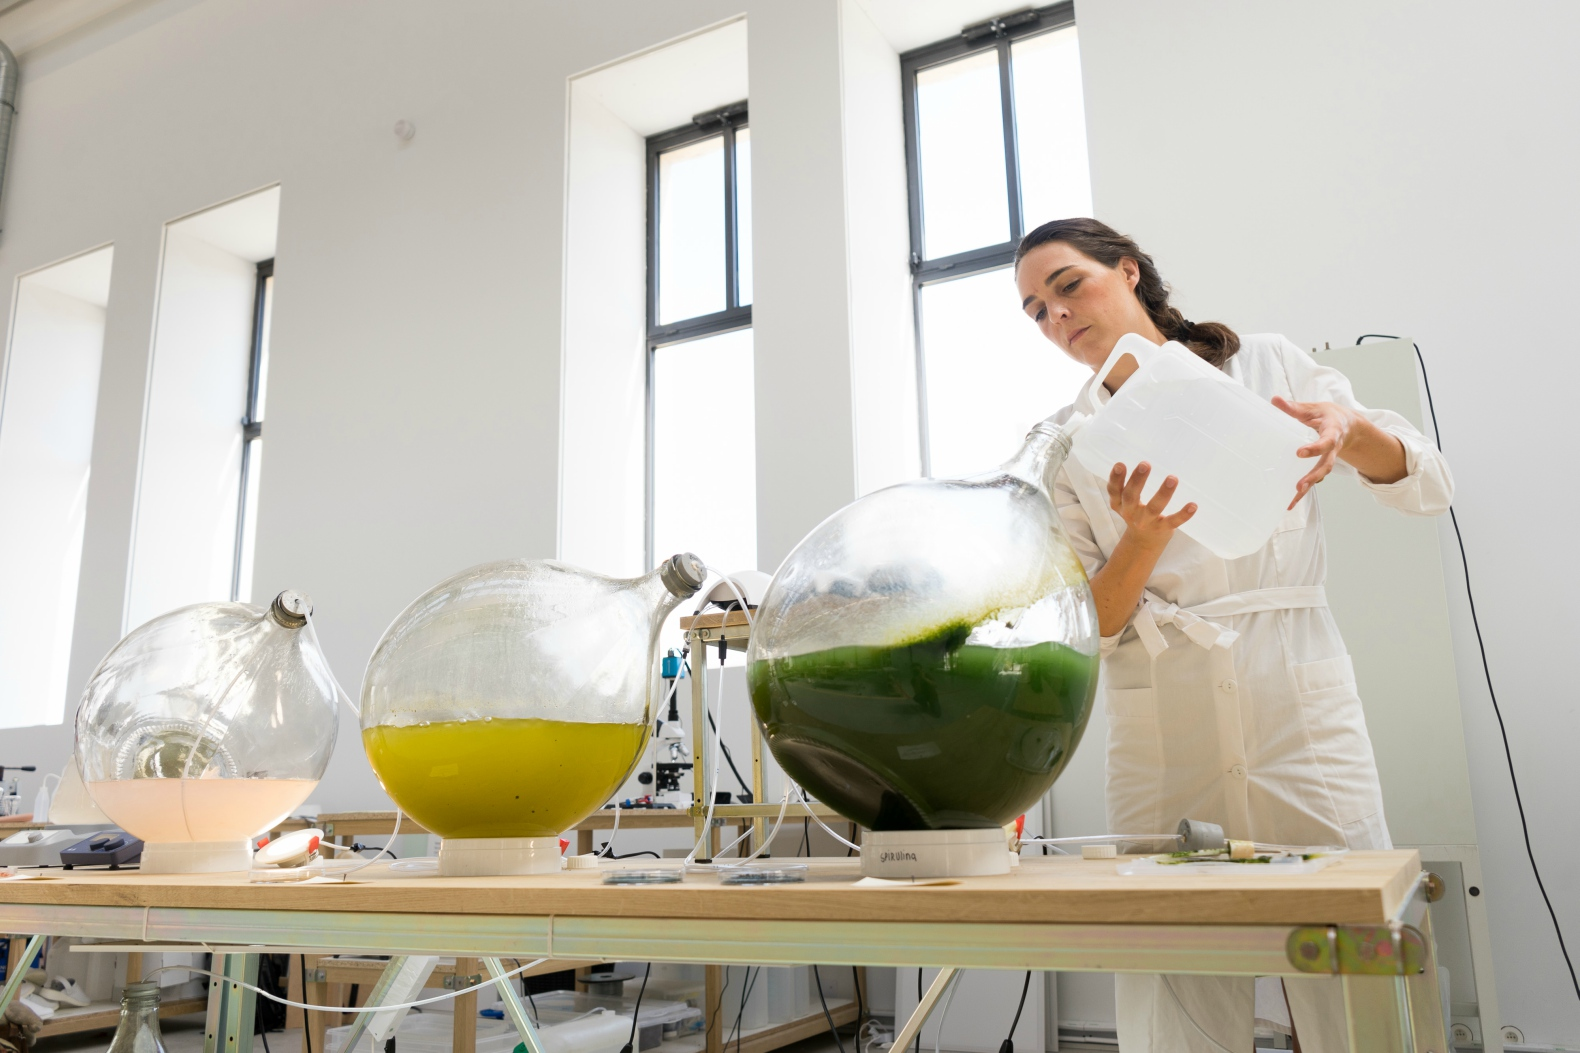 New 3D-printed algae could revolutionize the way we make things